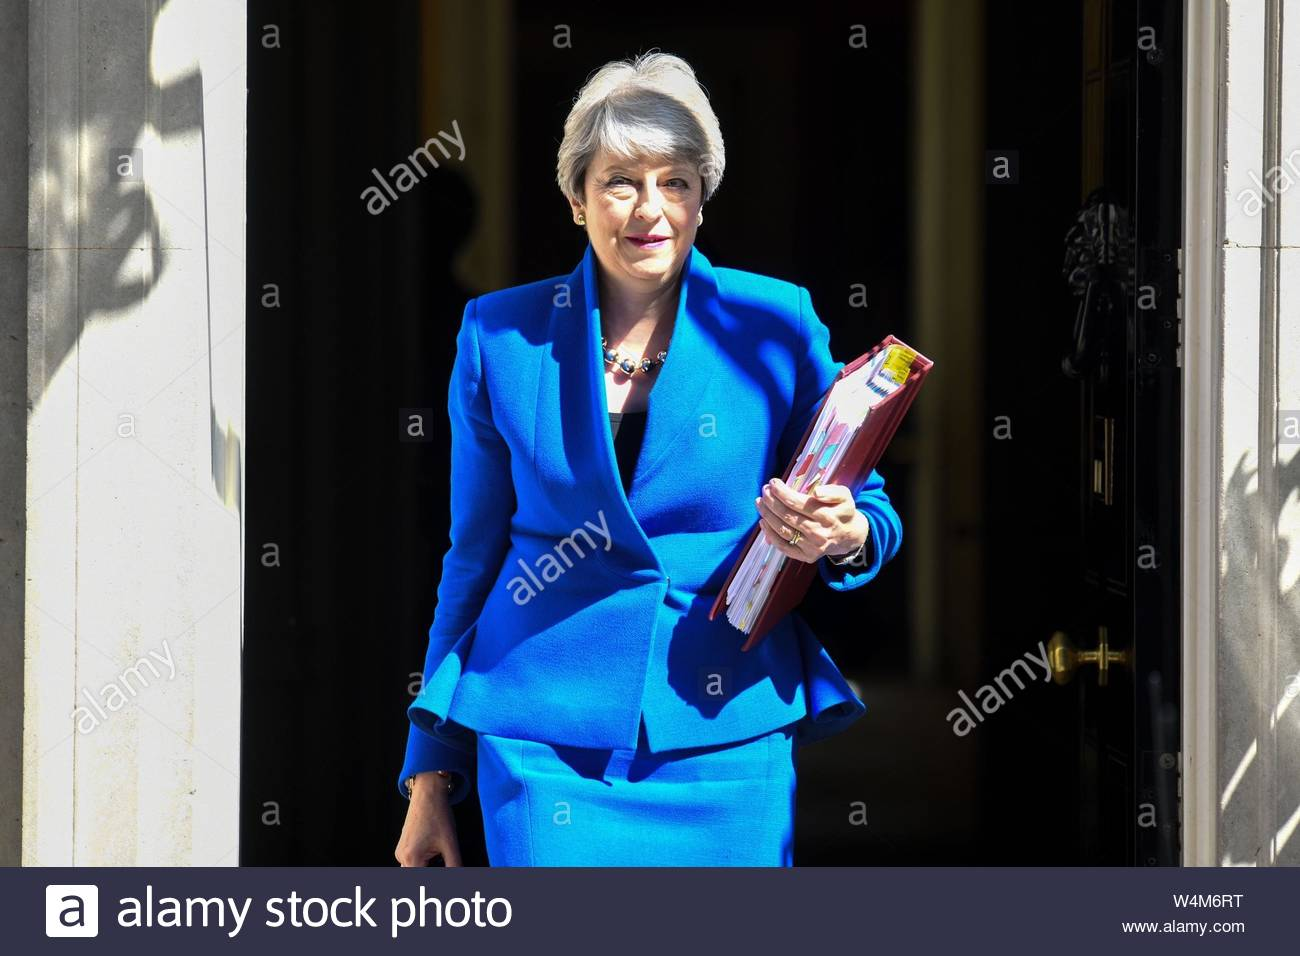 London, UK. 24 July, 2019. PM Theresa May leaves 10 Downing Street for her last PMQs as Prime Minister. Credit: Bart Lenoir/Alamy Live News Stock Photo